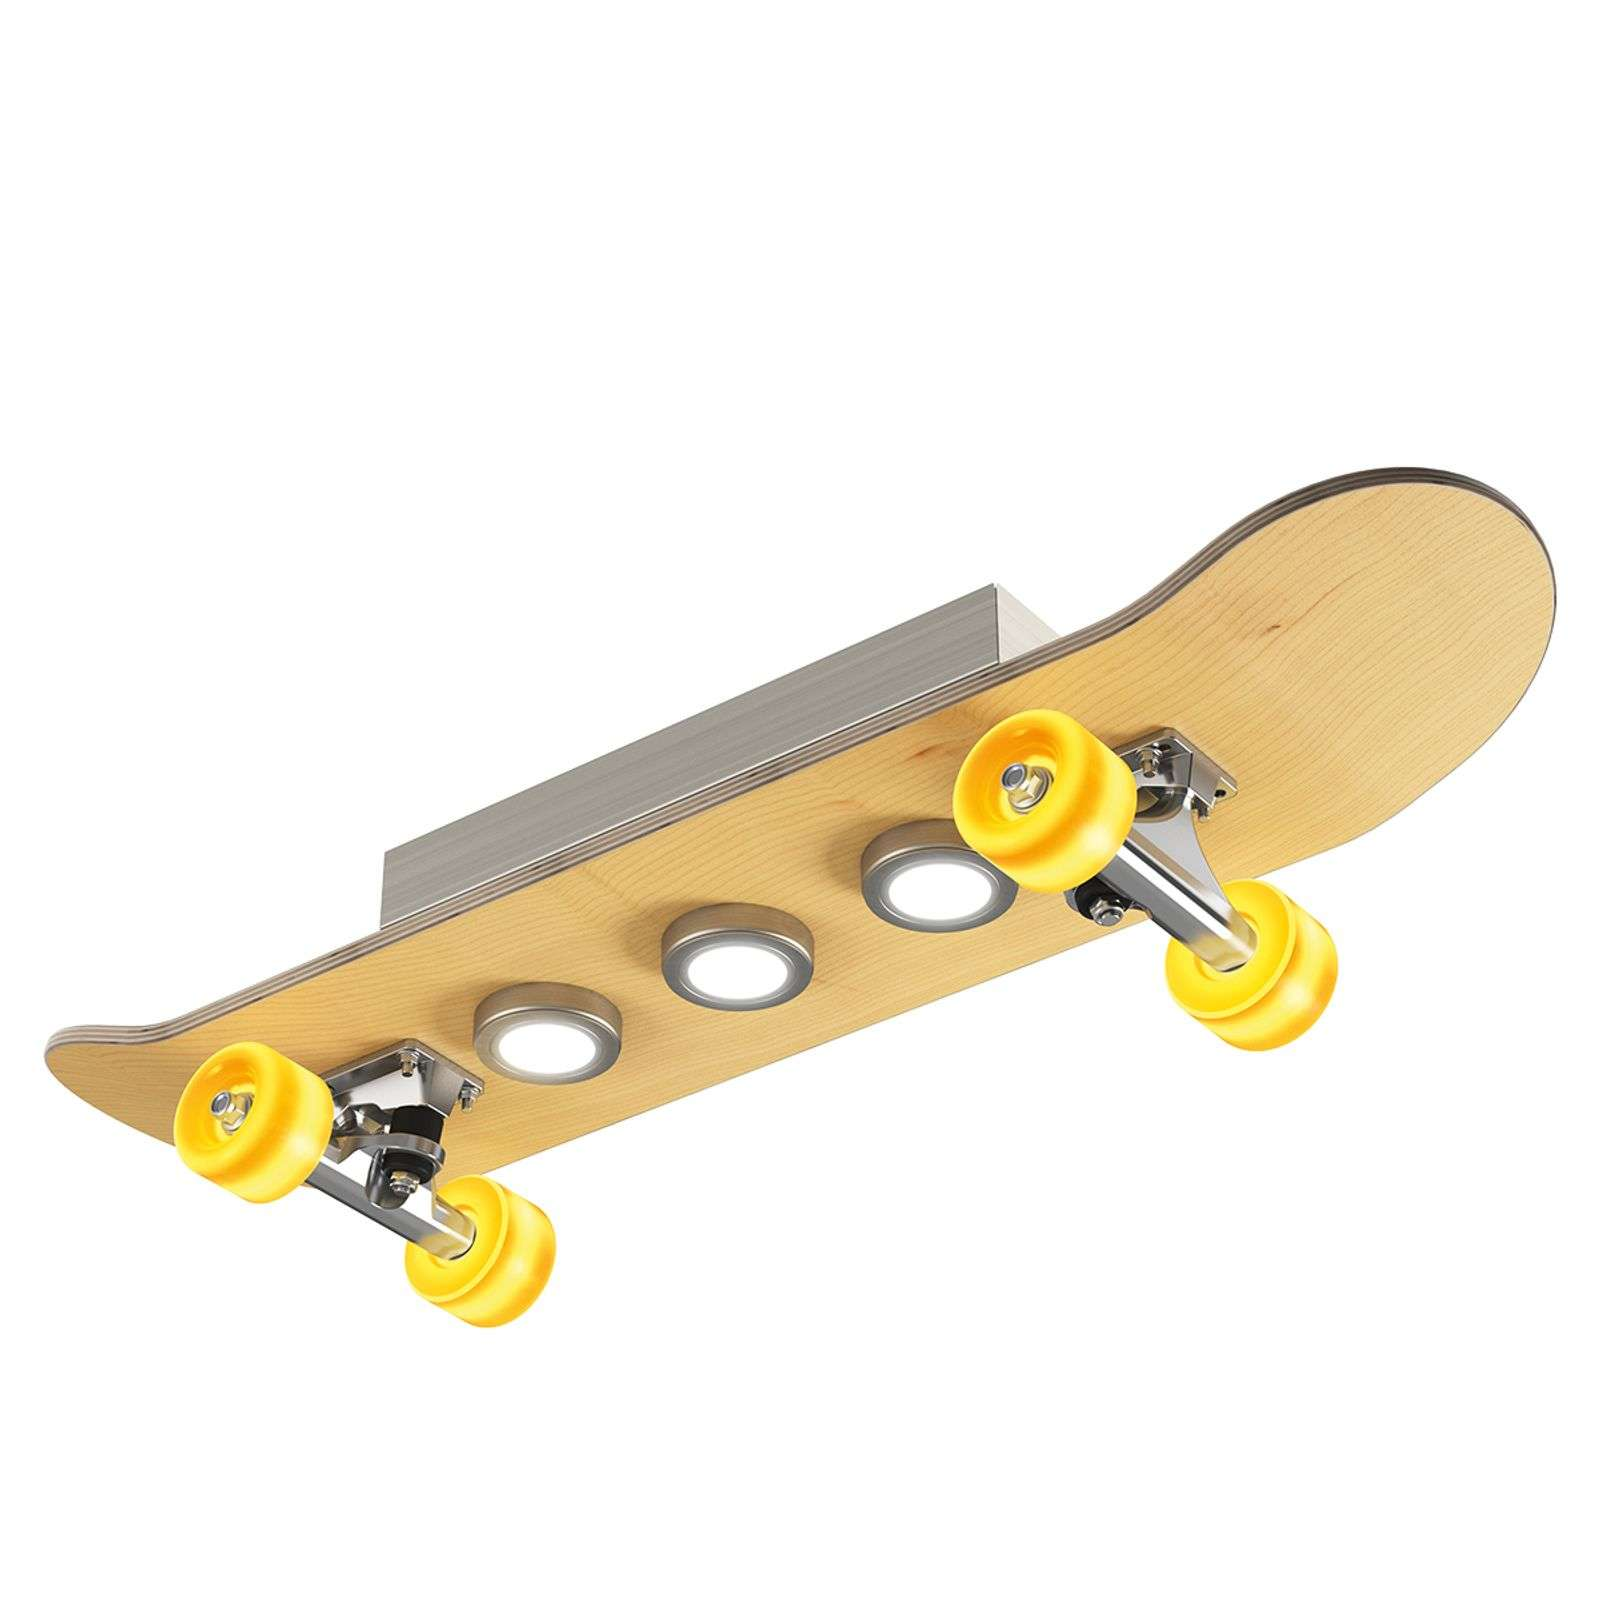 Lampada LED da soffitto Light Cruiser a skateboard